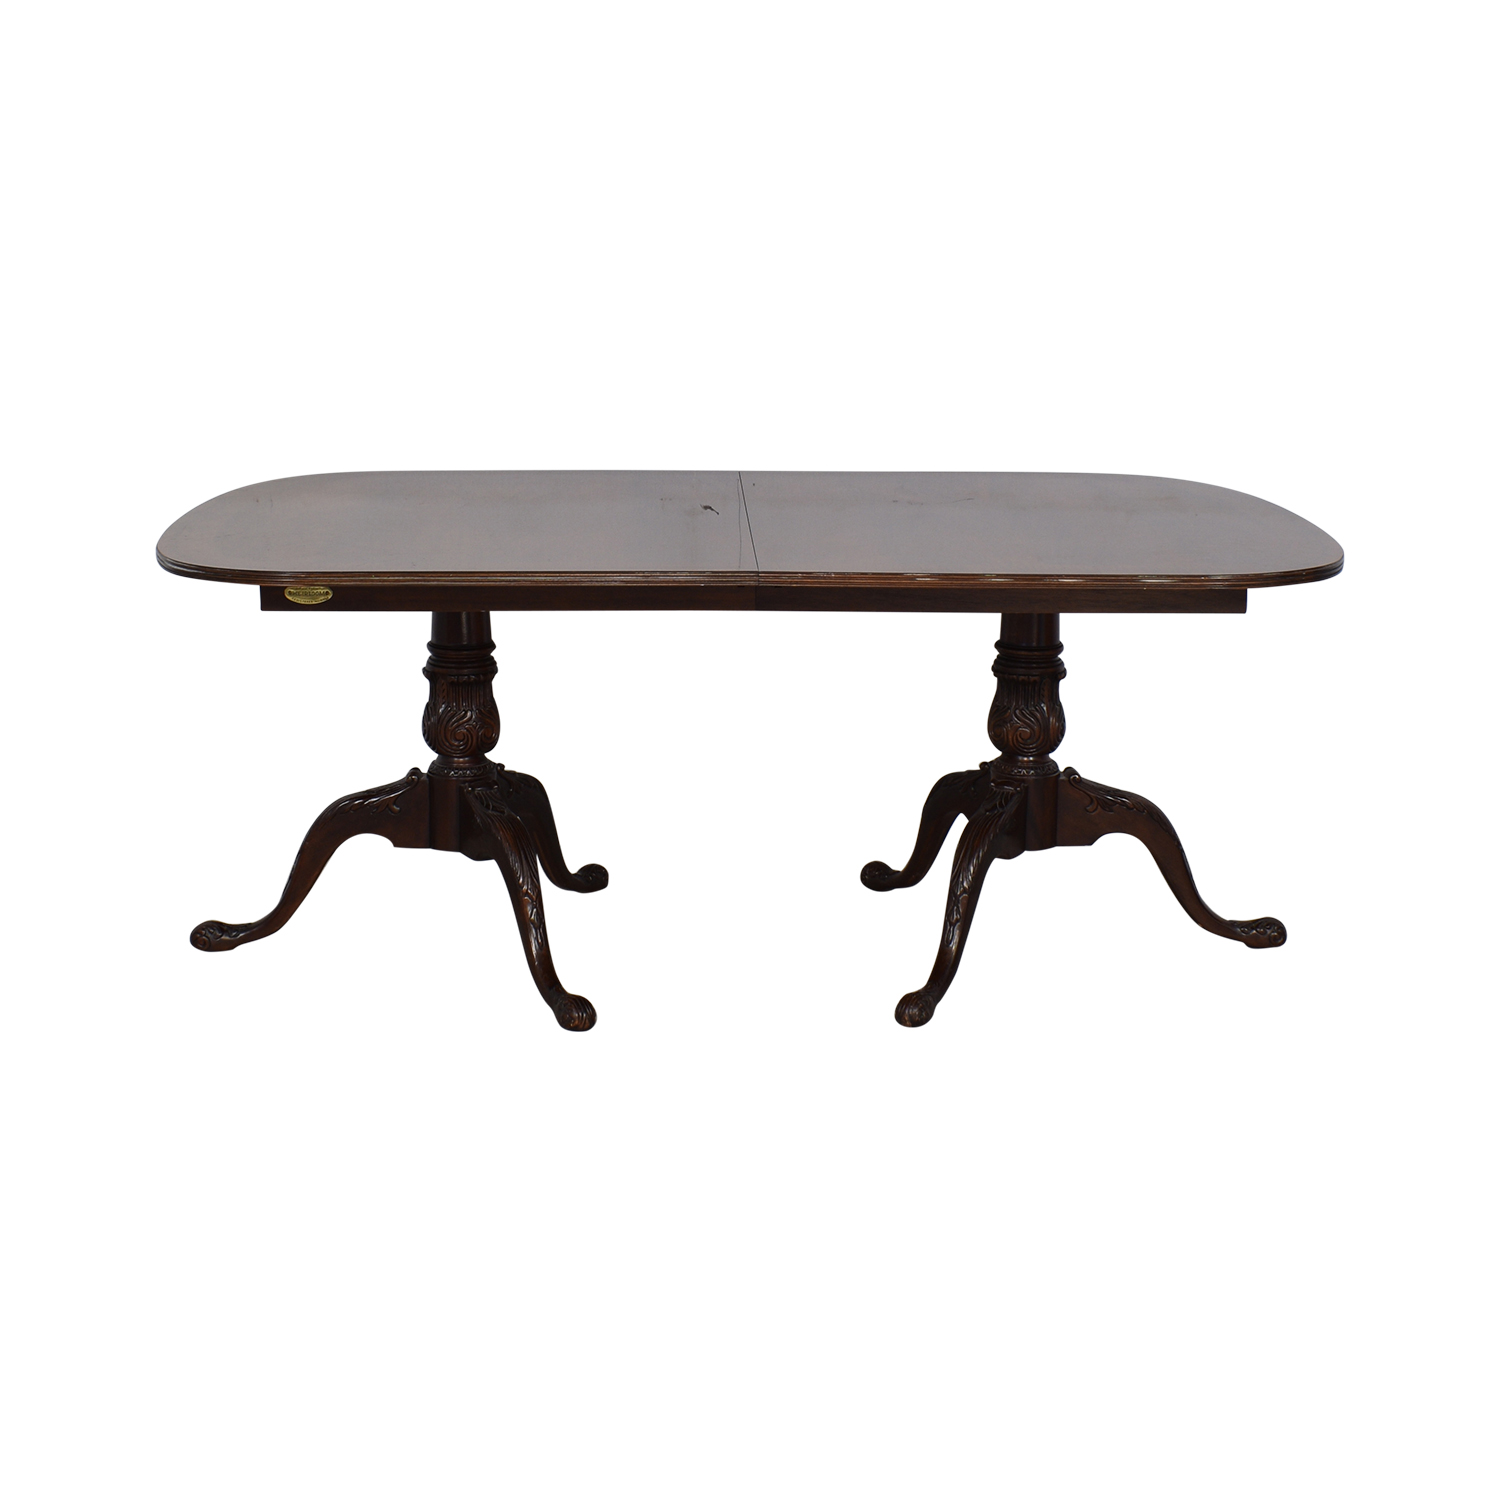 83% OFF - Drexel Heritage Drexel Heritage Double Pedestal Dining Table /  Tables